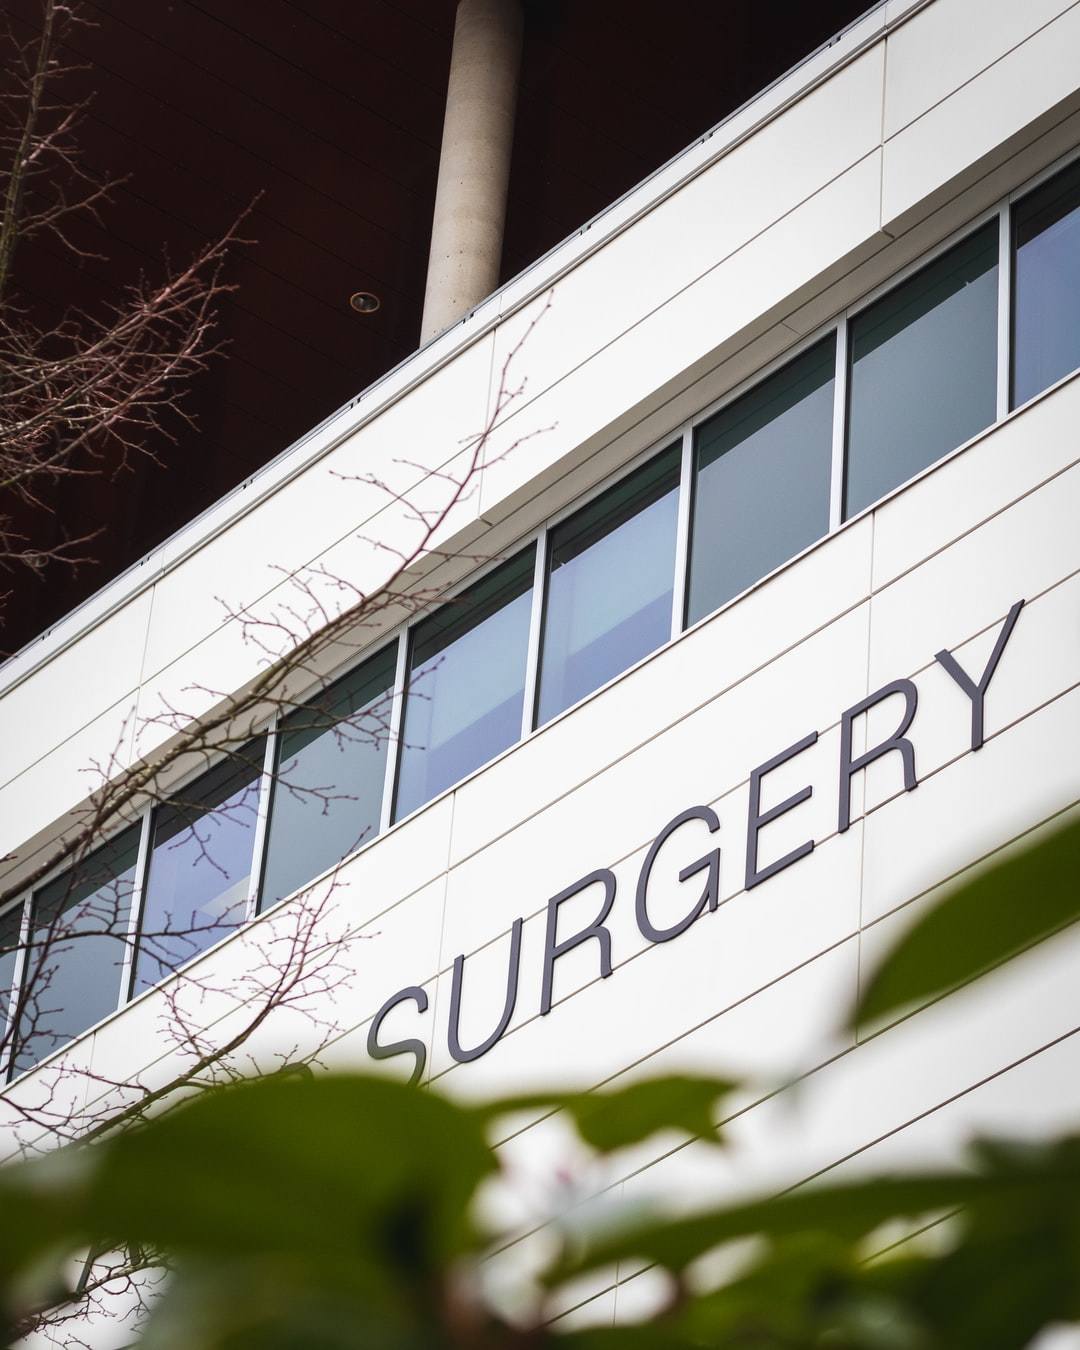 outside hospital building wall with sign saying surgery